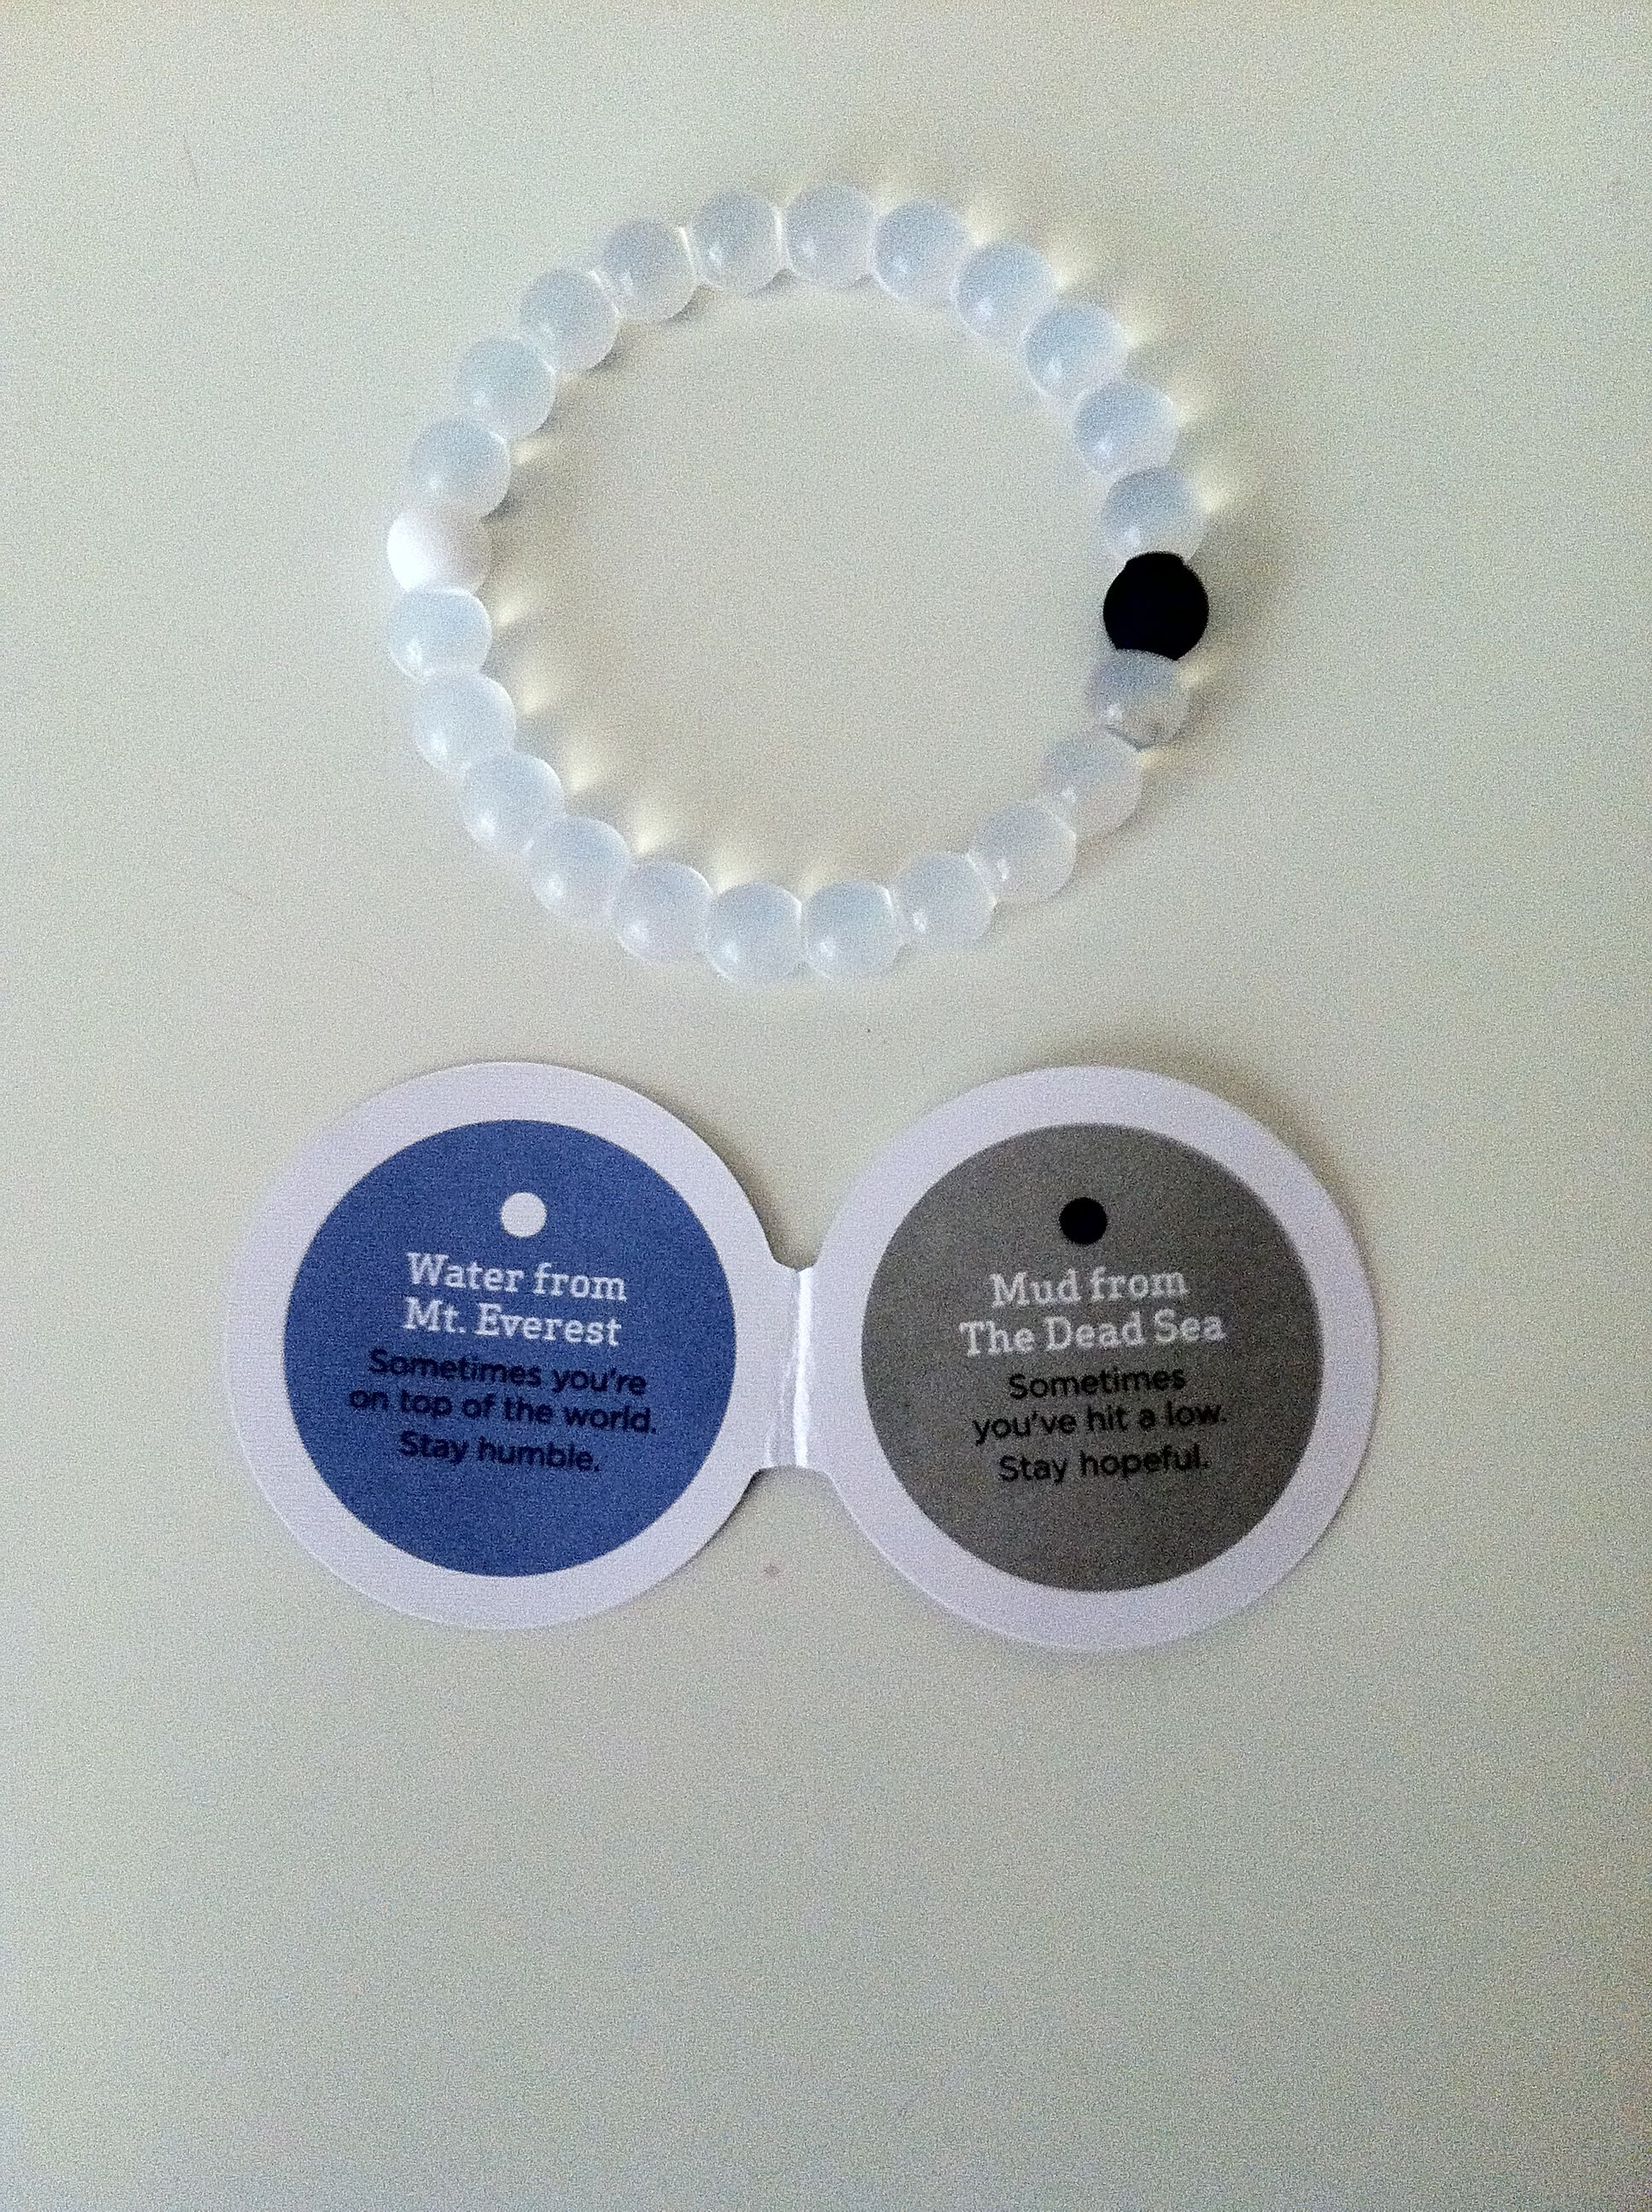 I M Loving My New Lokai Bracelet Look It Up Because The Meaning Of This Is Awesome